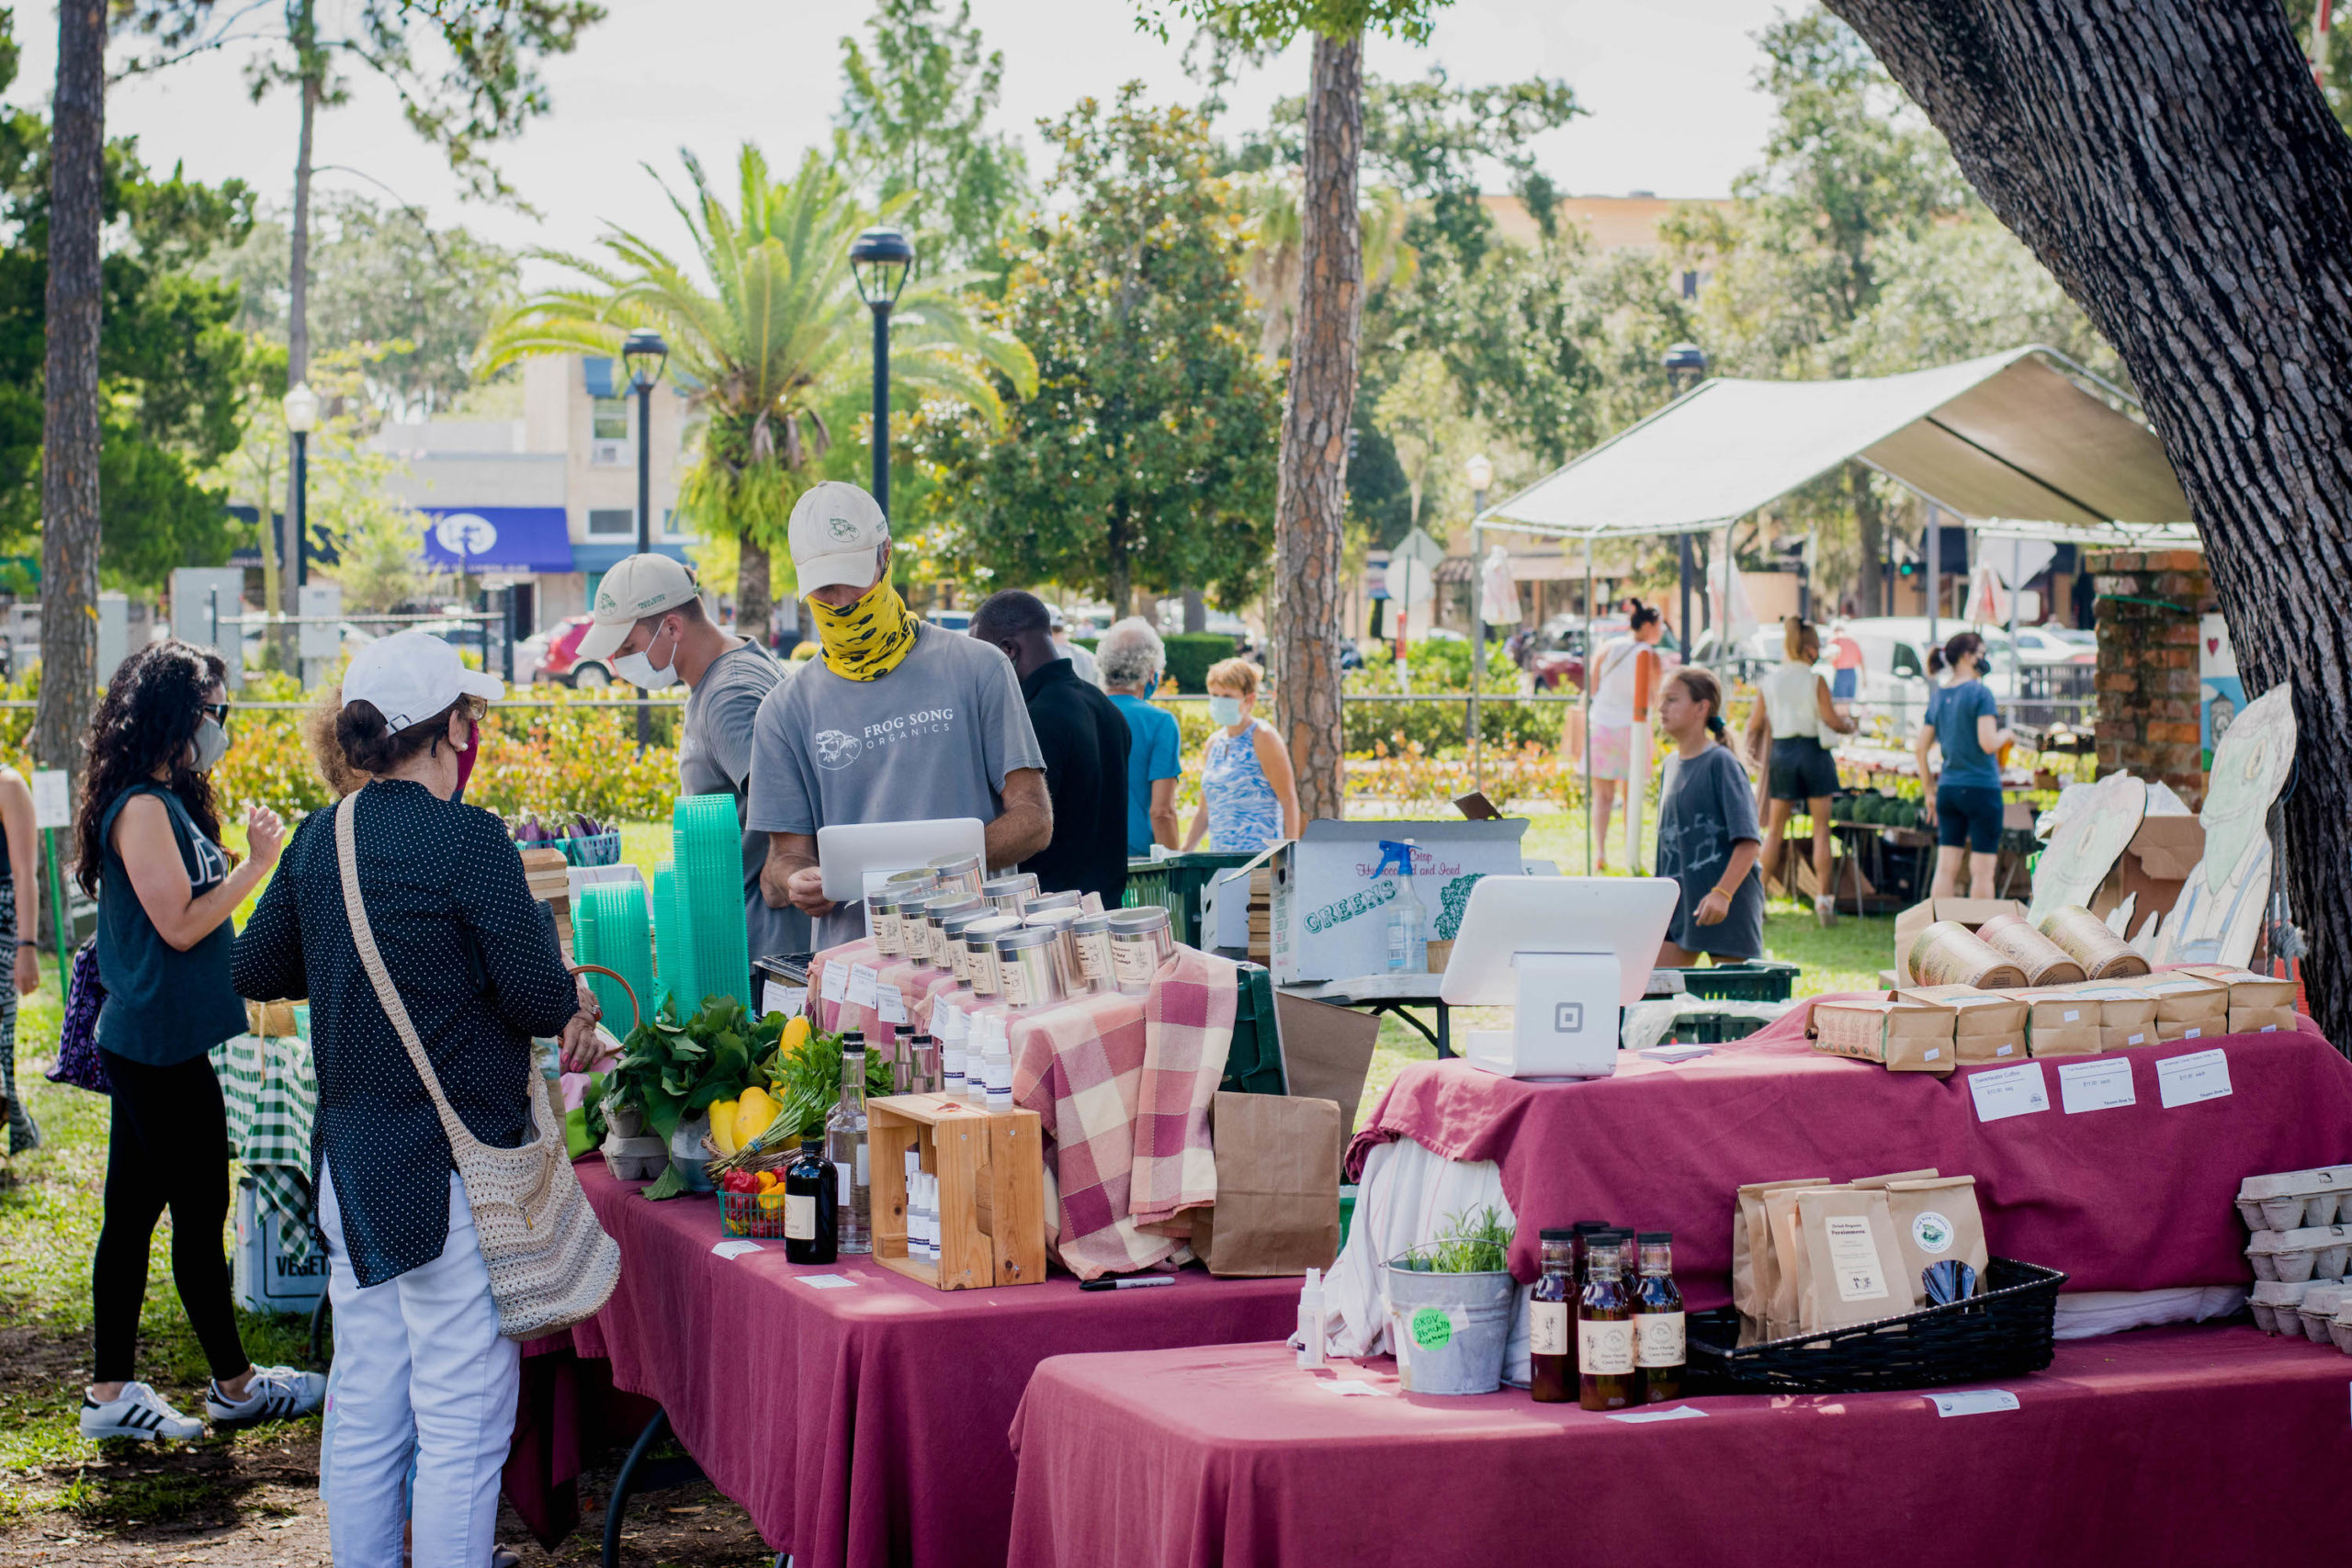 People gather at the Frog Song Organics stand at the Winter Park Farmer's Market.